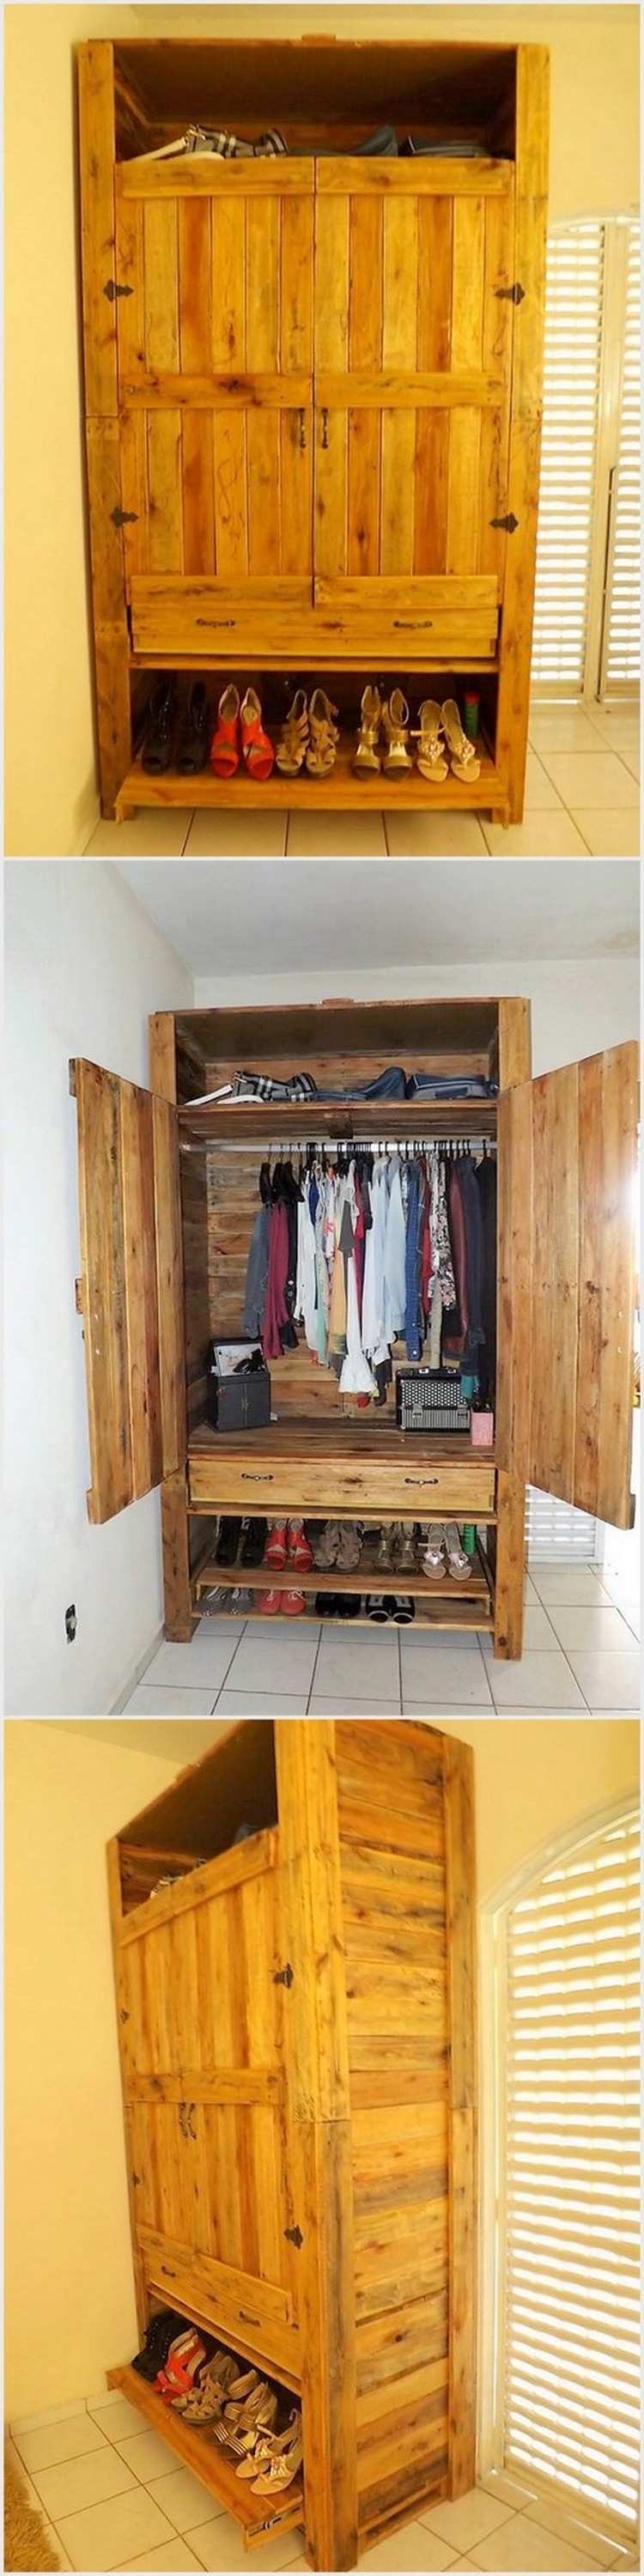 Recycled Pallets Made Wardrobe with Shoe Storage